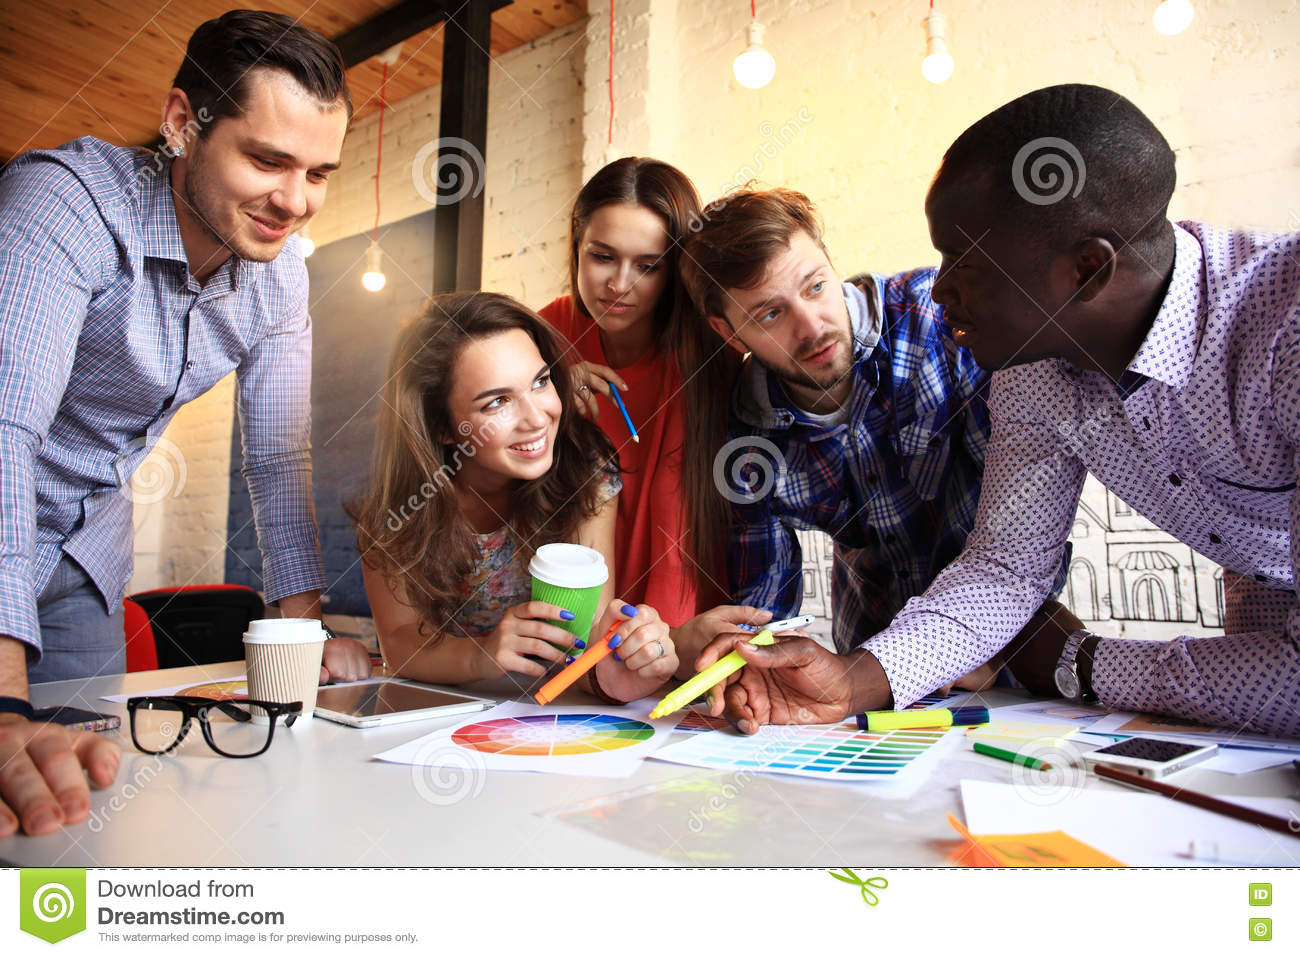 Portrait of happy young people in a meeting looking at camera and smiling. Young designers working together on a